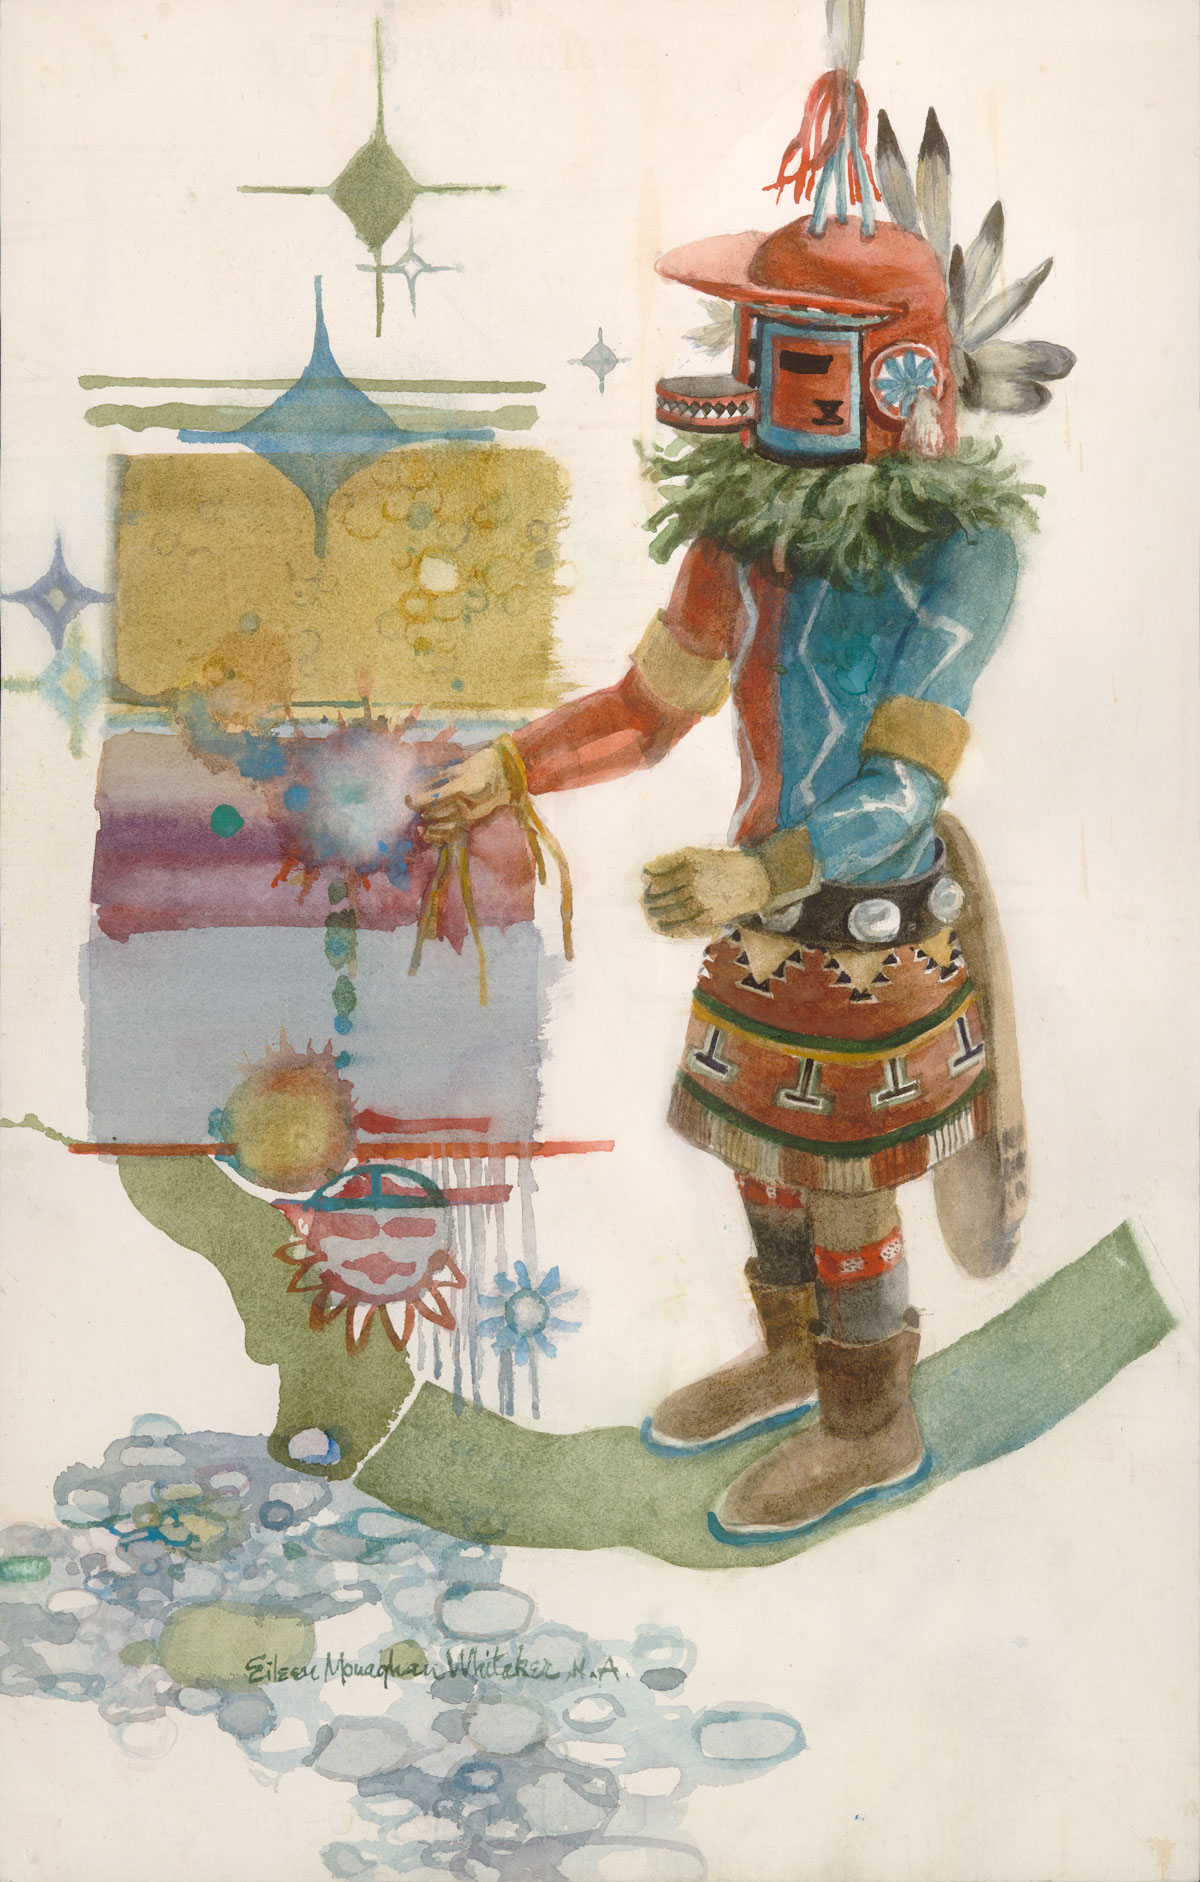 """Kachina Marao"" 1983 © Eileen Monaghan Whitaker 22x14 inches Watercolor"